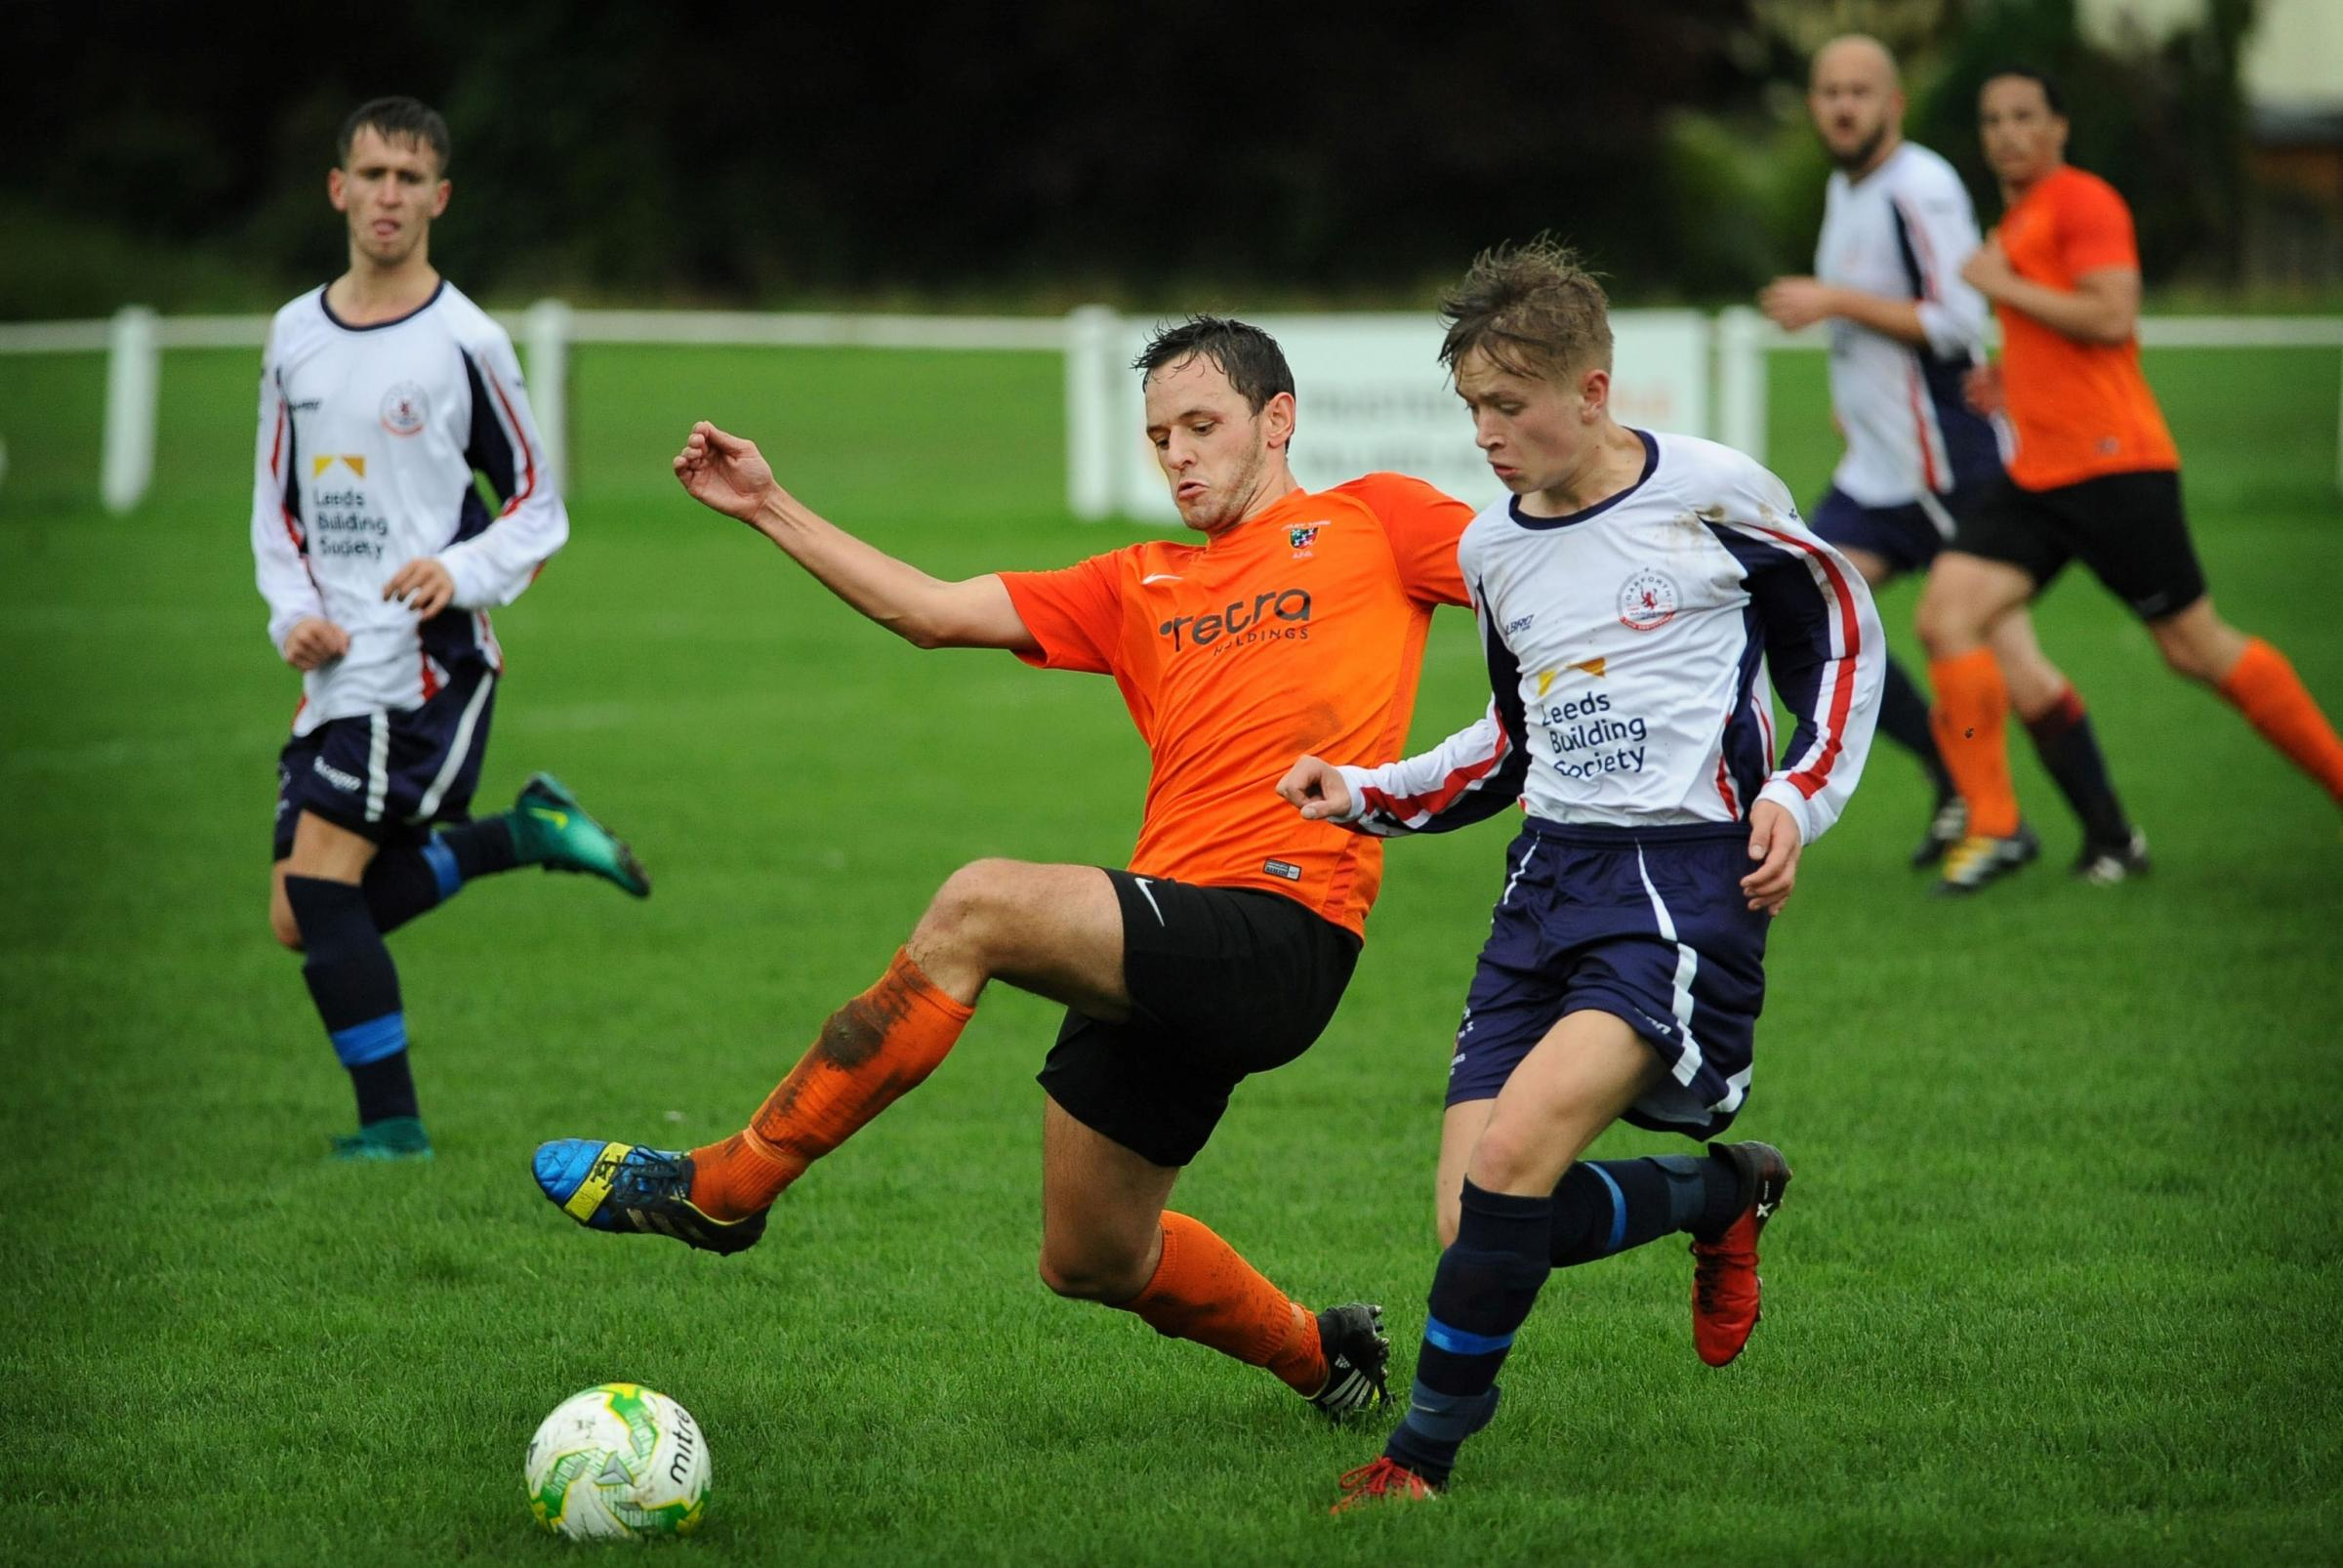 Otley Town's Harry Leigh (orange shirt) worked hard to keep Newsome's pacy attack at bay